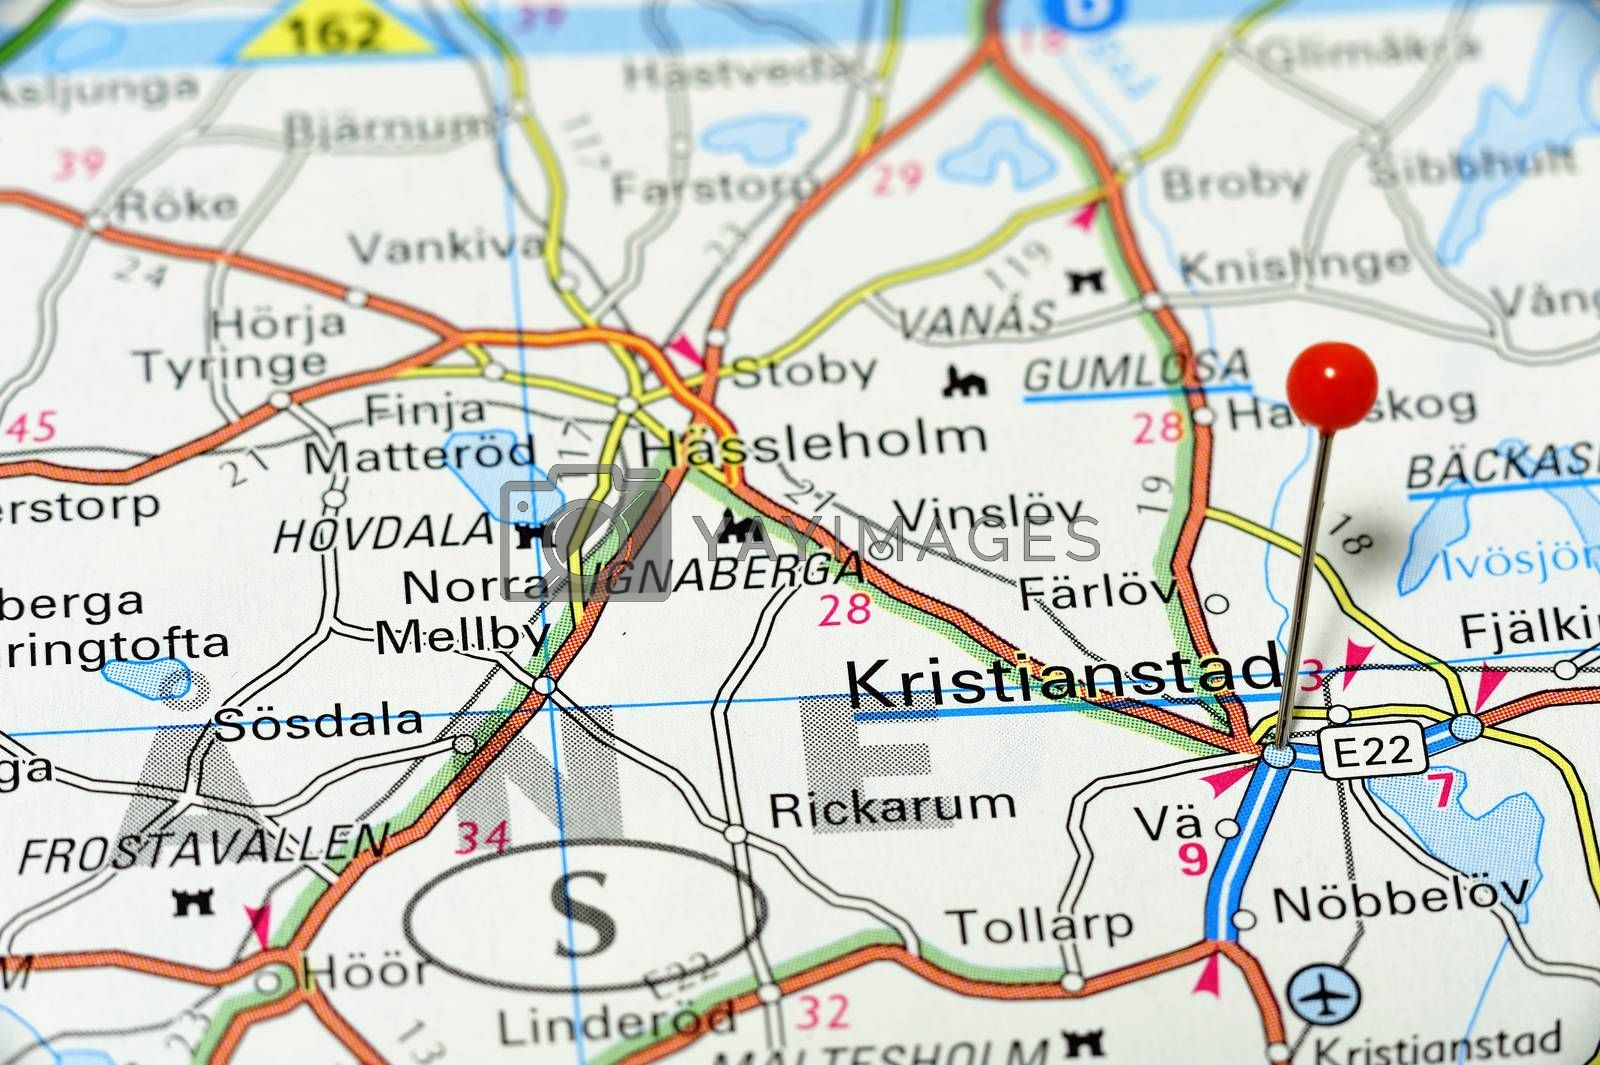 Closup map of Kristiandstad. Krsitiandstad a city in Sweden